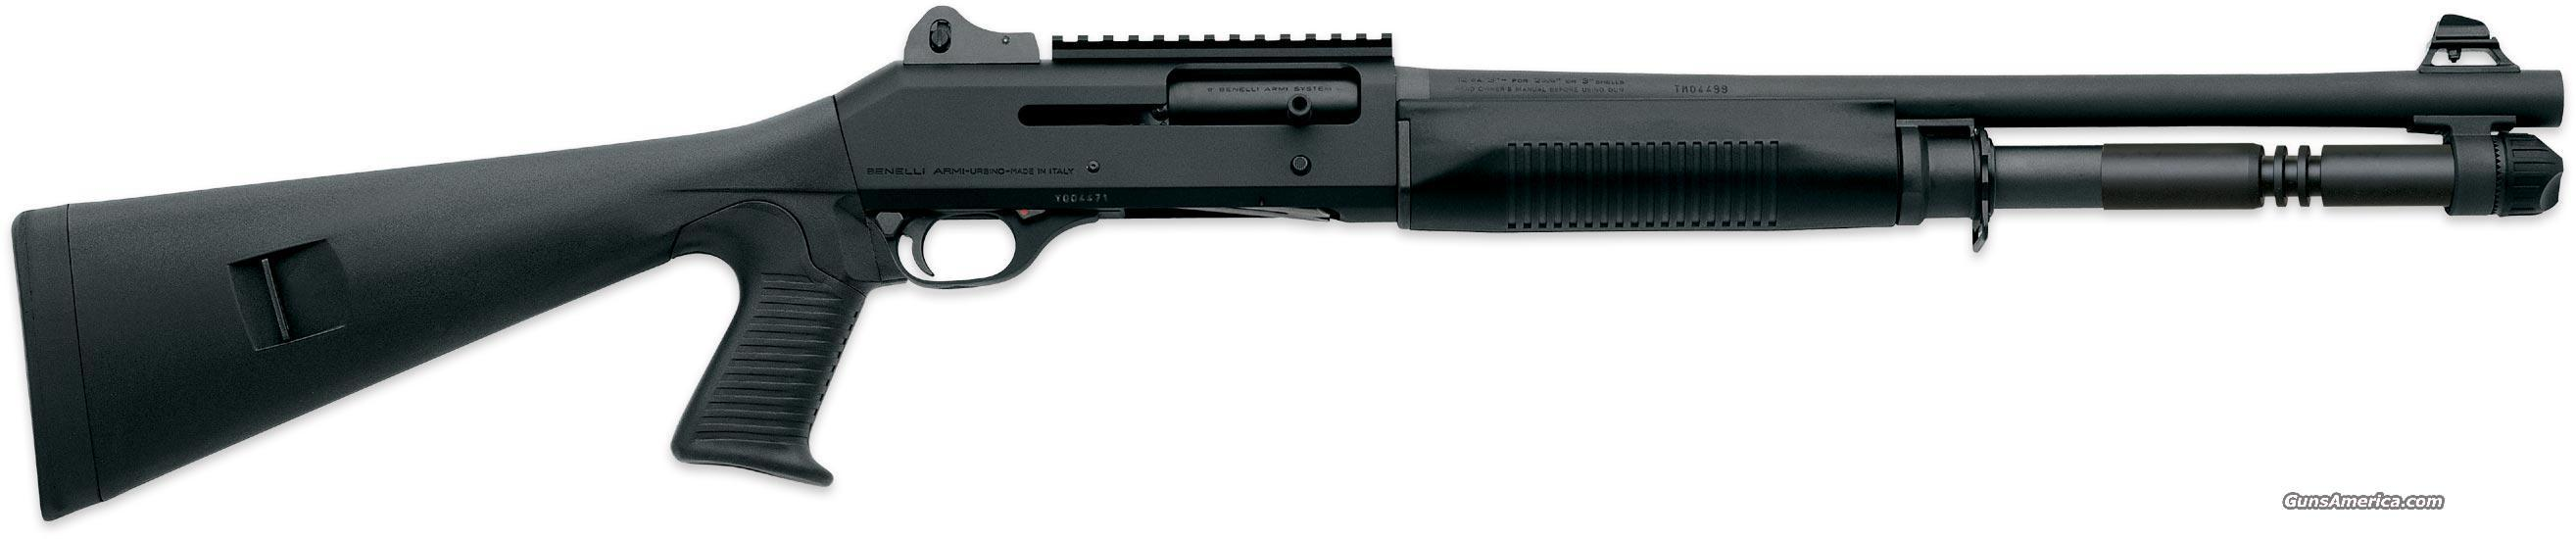 Lewis Auto Sales >> BENELLI M4 TACTICAL for sale